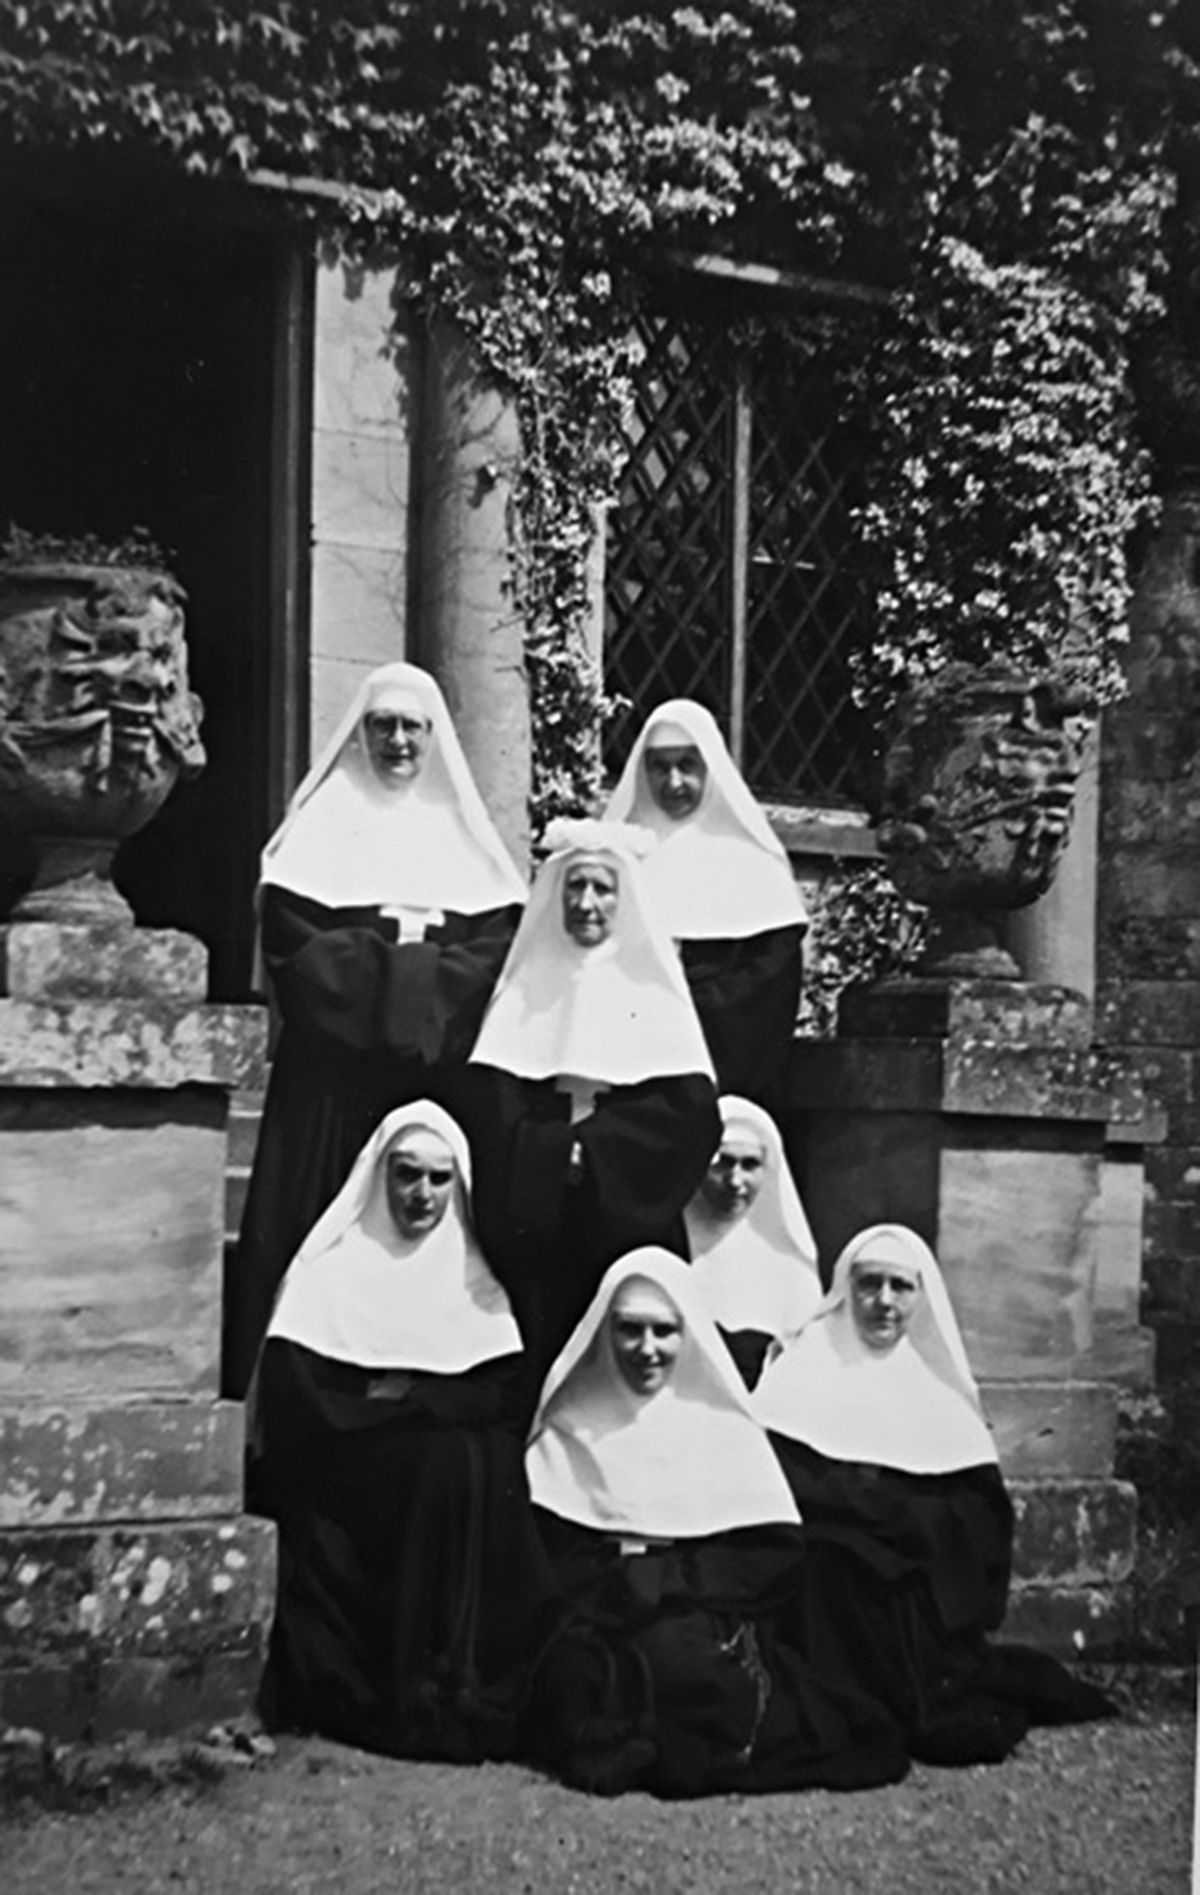 The Nuns of the Assumption at Aldenham Park in about 1941.